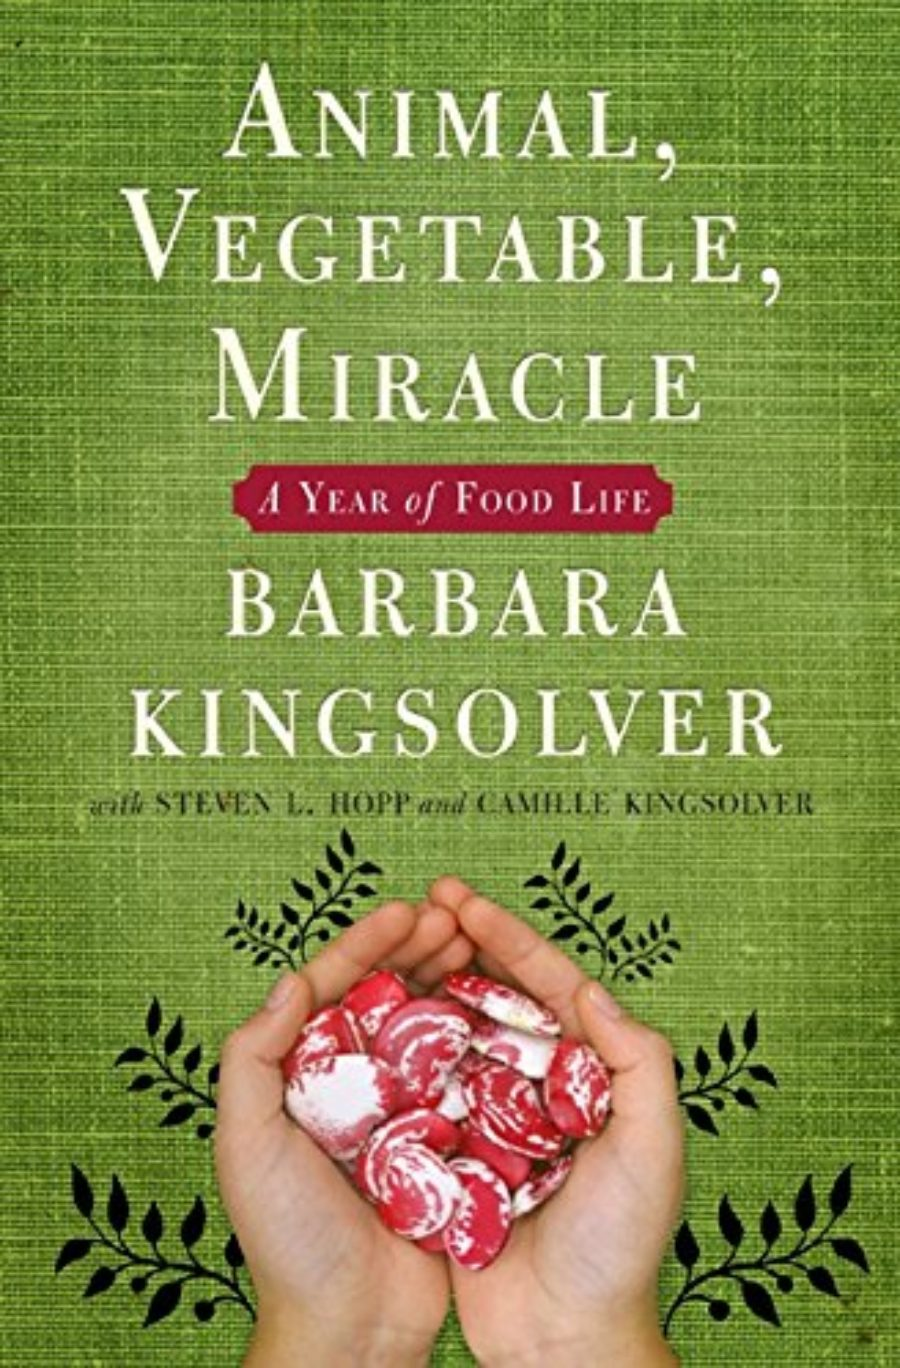 Barbara Kingsolver  The Ethics Of Eating  The On Being Project  Phd Literature Review Help also Thesis Of A Compare And Contrast Essay  English Persuasive Essay Topics